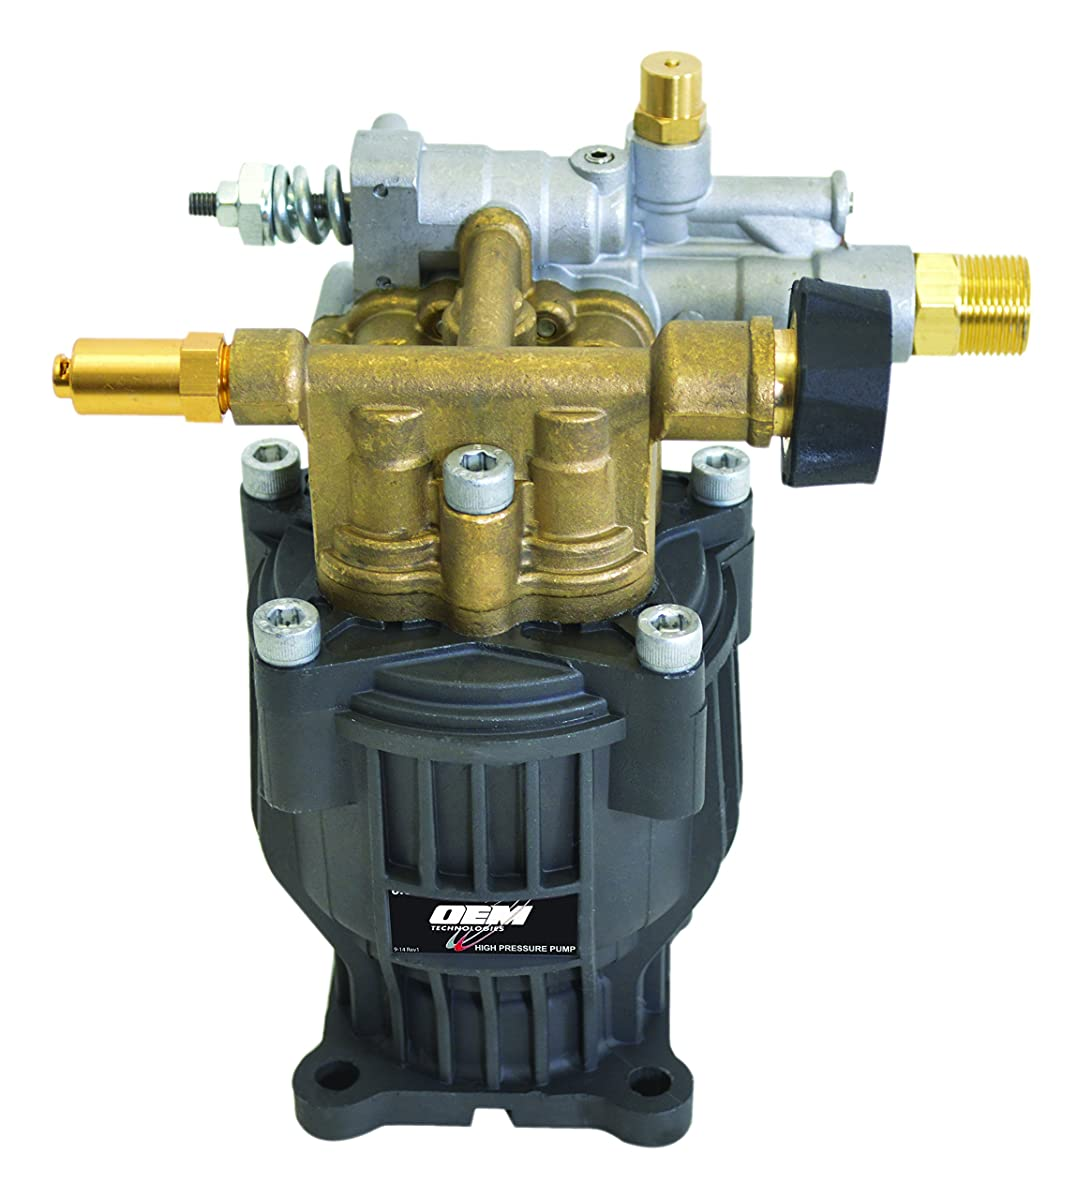 SIMPSON Cleaning 90029 Axial Cam Horizontal Pressure Washer Replacement Pump 8.6CAH12B 3100 PSI @ 2.5 GPM with Brass Head and PowerBoost Technology